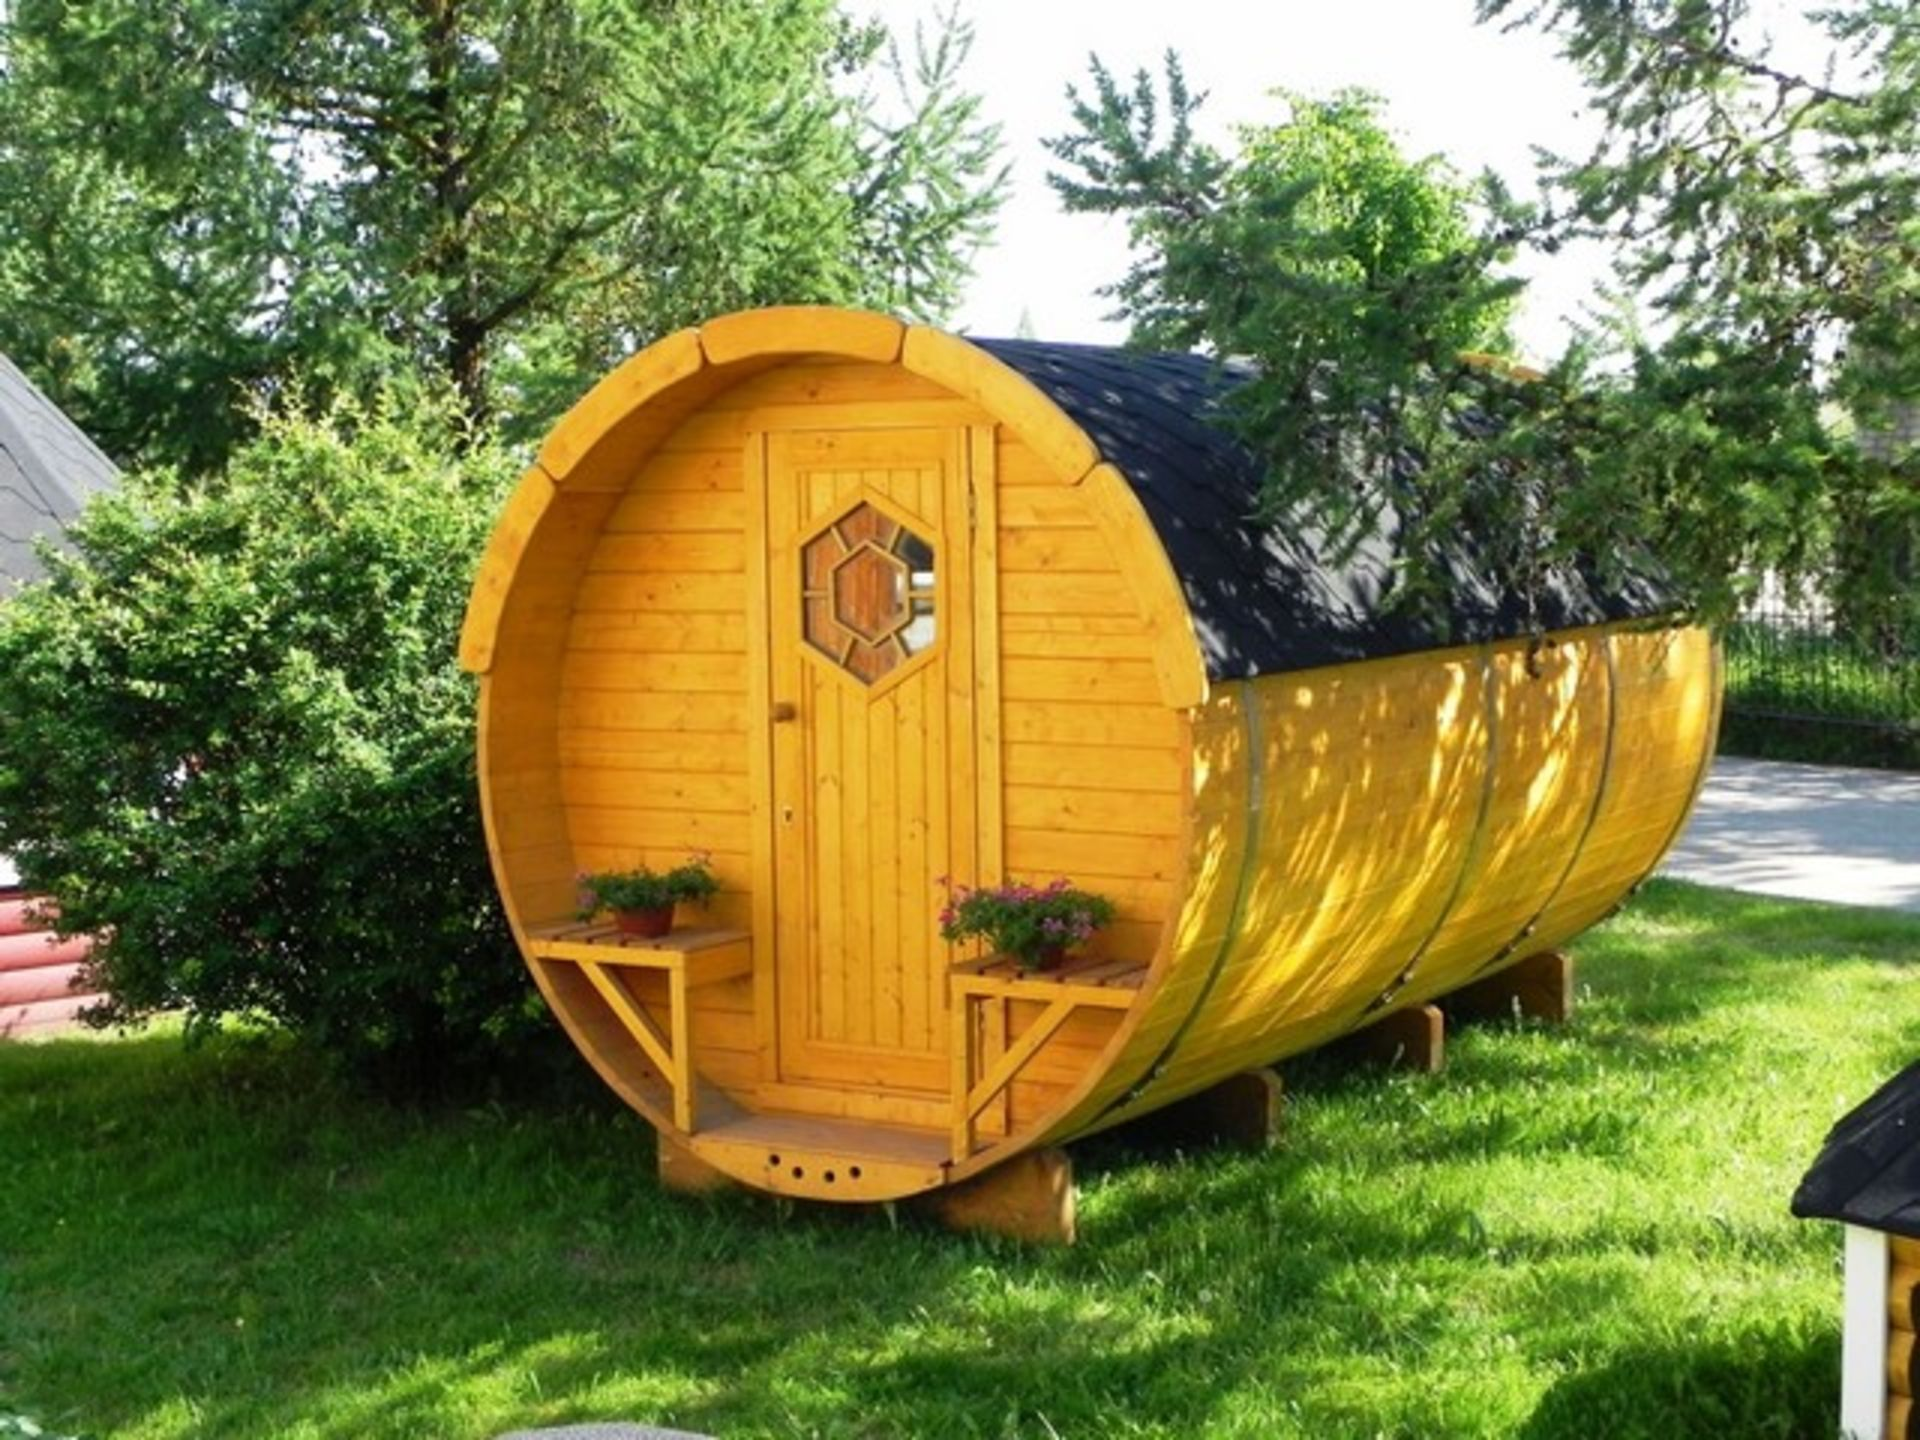 Lot 18040 - V Brand New 4 x 2.4m Barrel For Sleeping - Sleeping Room 2 x 2m - Small Benches at Entrance -